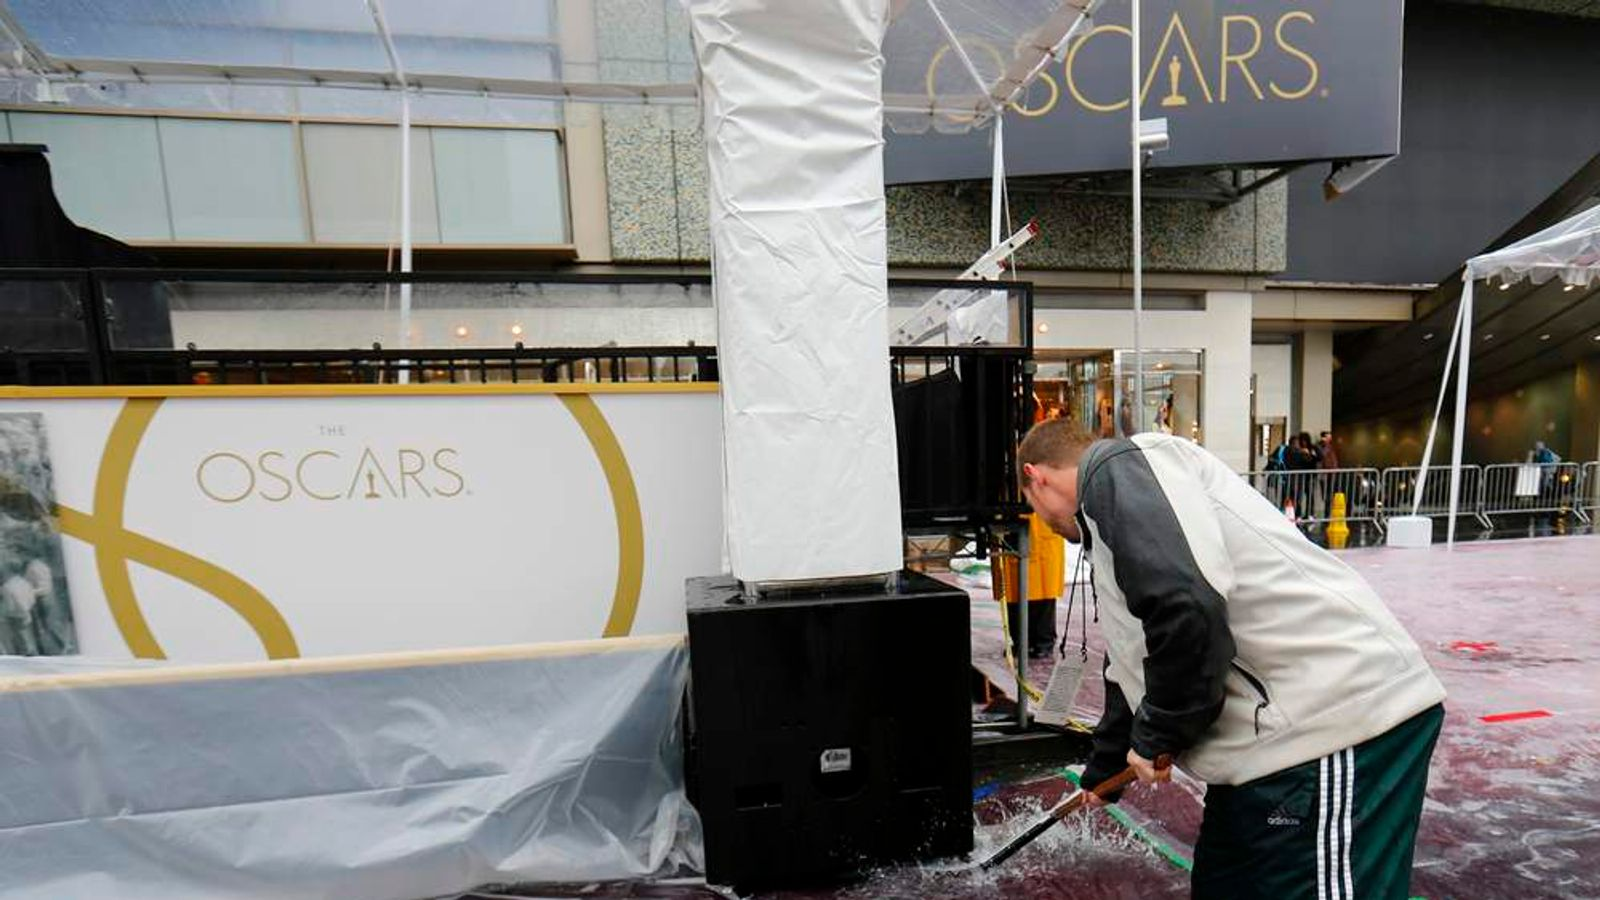 A worker pushes water off the red carpet as preparations for the 86th Academy Awards continues in the rain outside the Dolby Theatre in Hollywood